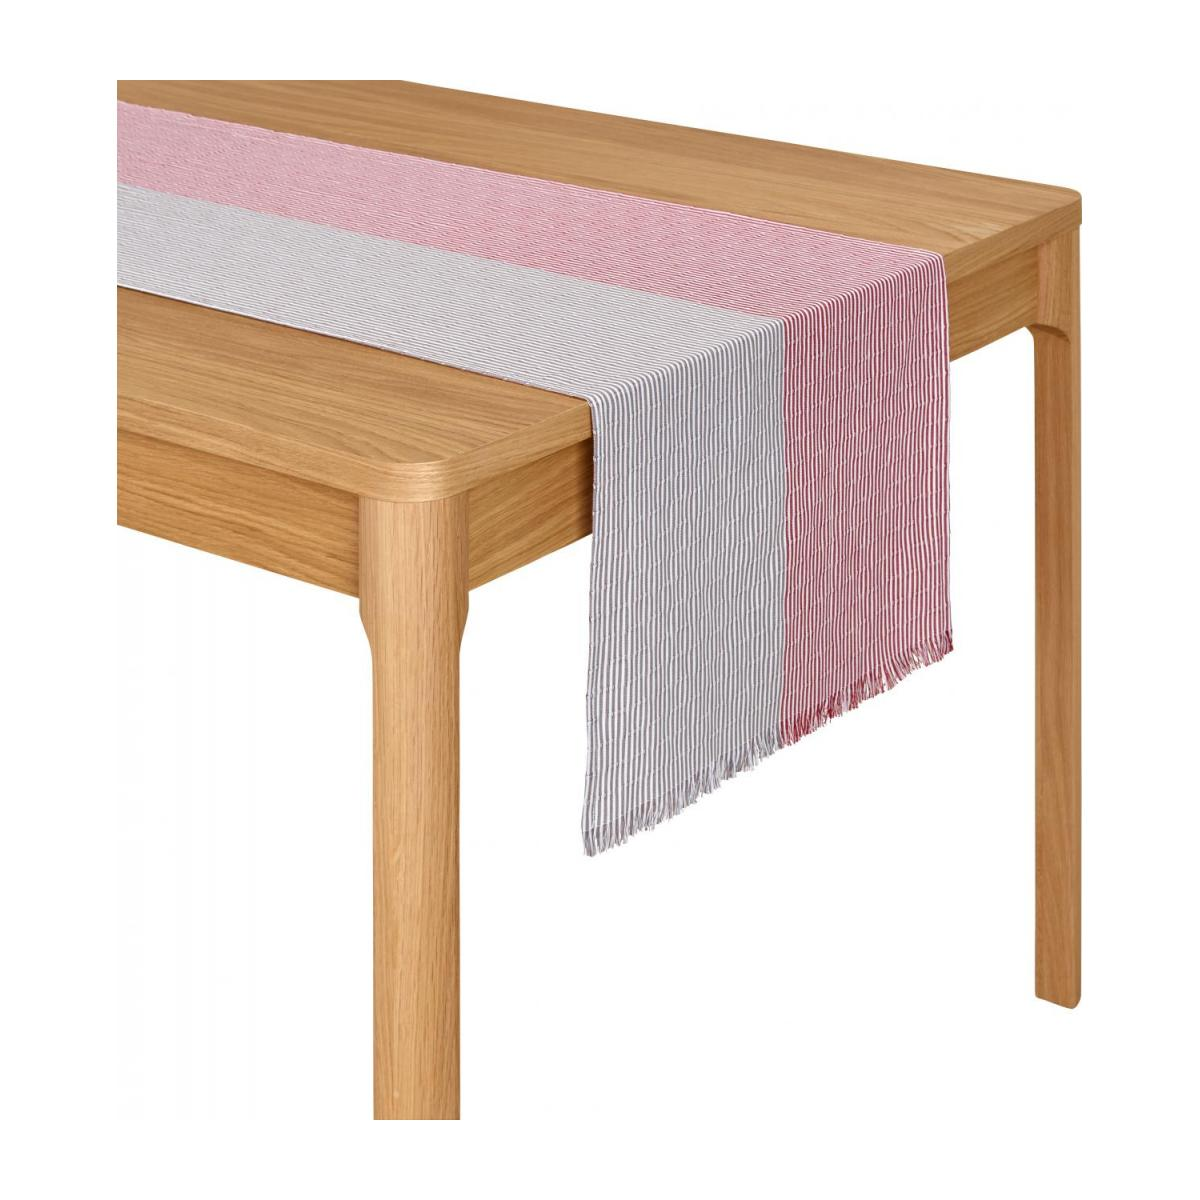 Chemin de table en coton - 45 x 200 cm - Rouge et Taupe n°2